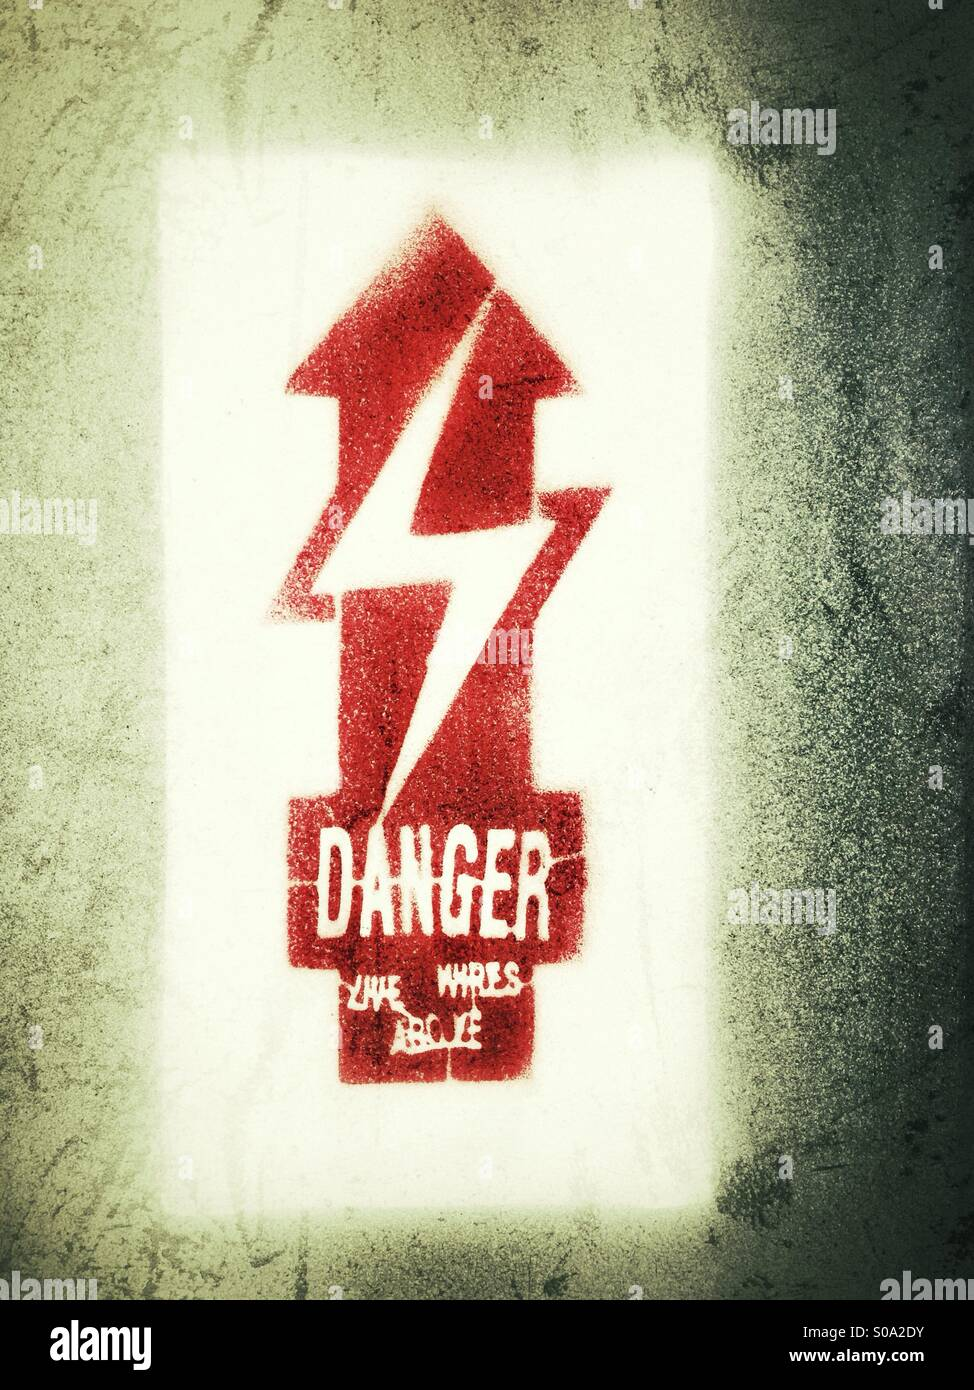 Danger, live wires above - Stock Image